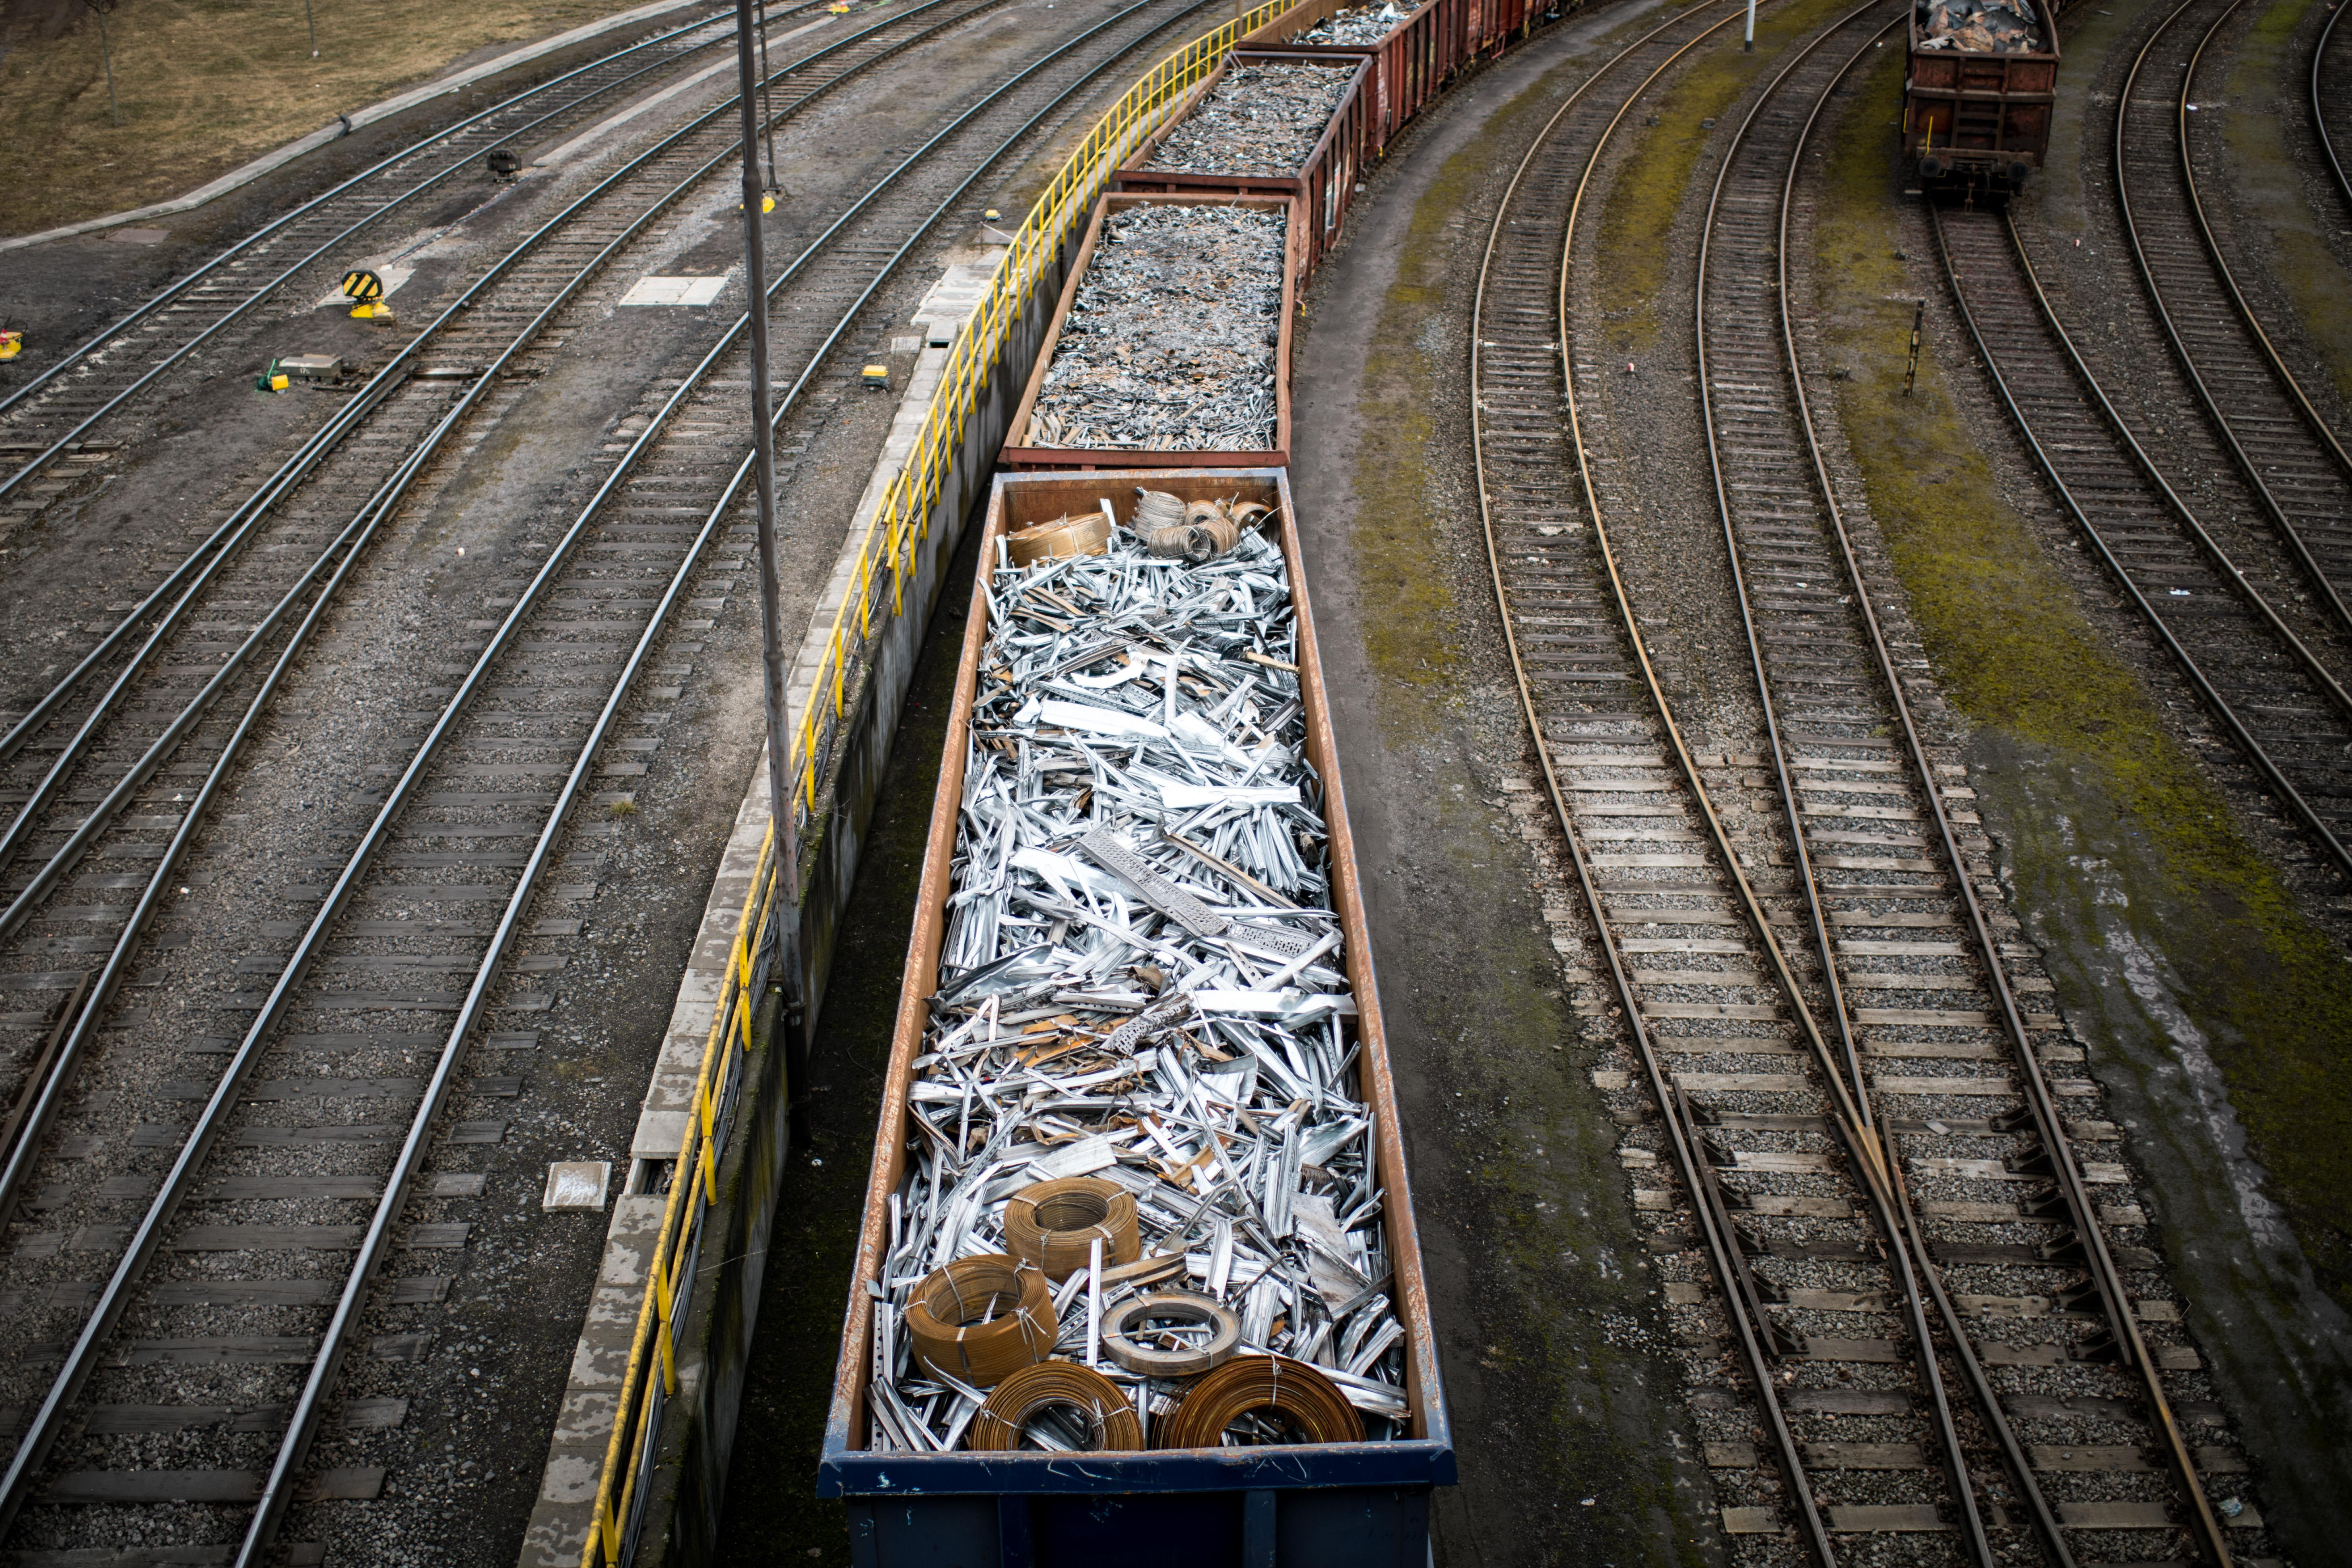 DUISBURG, GERMANY - MARCH 05: Trains with scrap metal stay in front of the Huettenwerk Krupp Mannesmann GmbH steel mill on March 5, 2018 in Duisburg, Germany. Tensions between U.S. President Donald Trump and the European Union are rising after Trump announced he would respond to any E.U. tariffs on American goods with U.S. tariffs on European cars. Trump originally sought tariffs on imports of steel and aluminum, to which EU officials said they would respond with tariffs on U.S. jeans, motorcycles and bourbon. The European Union and Canada are the two biggest exporters of steel to the United States. (Photo by Lukas Schulze/Getty Images)